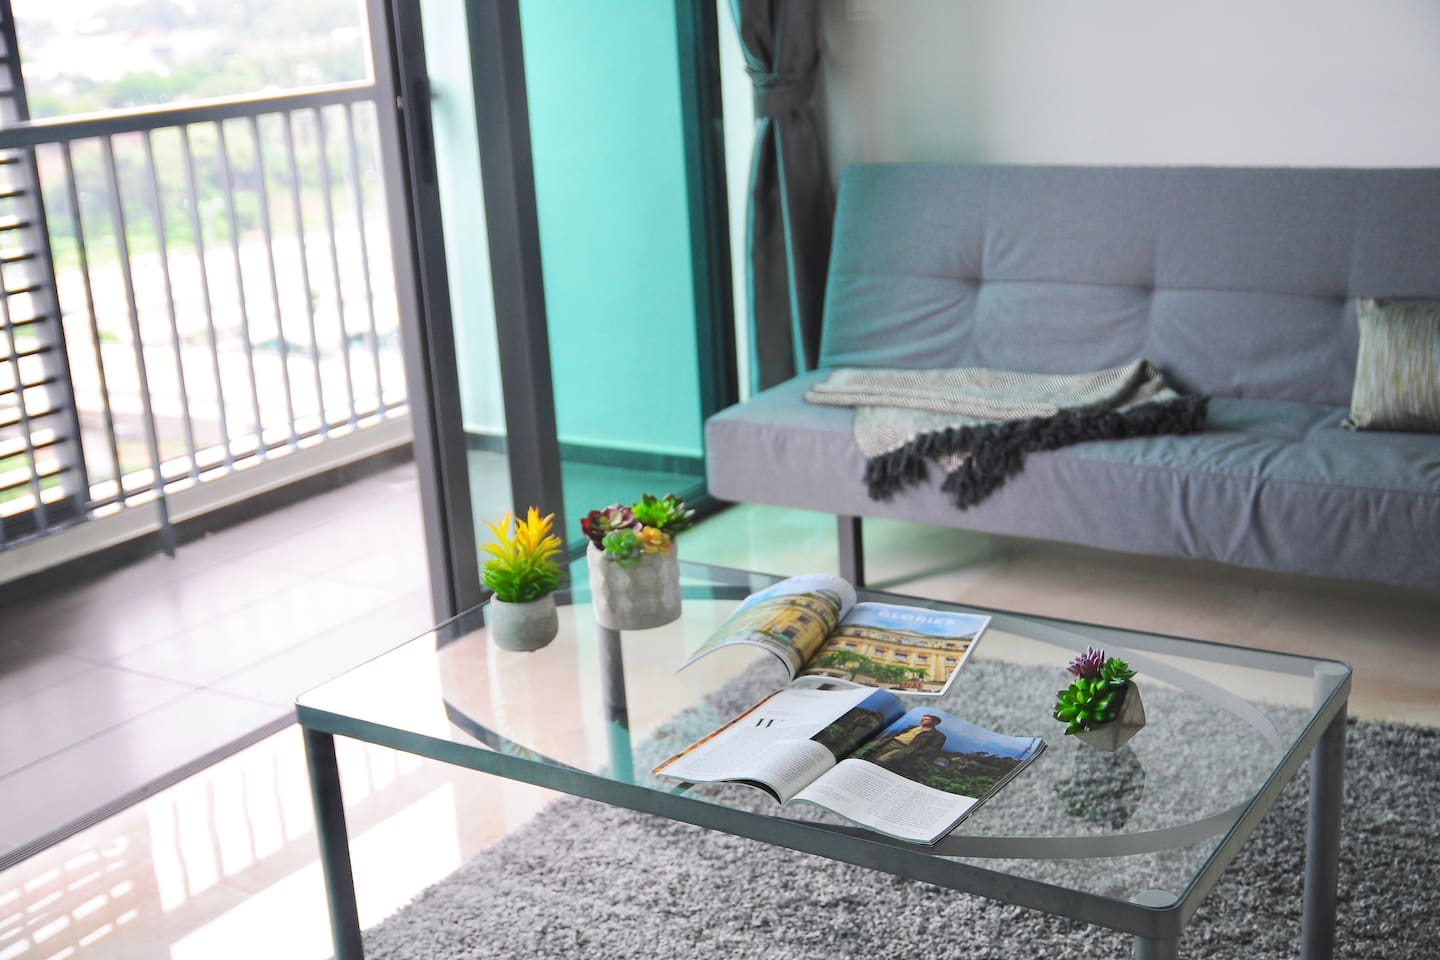 Luxe 1 Bedroom Unit, Located in the Prime Location of Kuala Lumpur. 1 Queen Bed and 2 Super Single Convertible Sofa Beds.